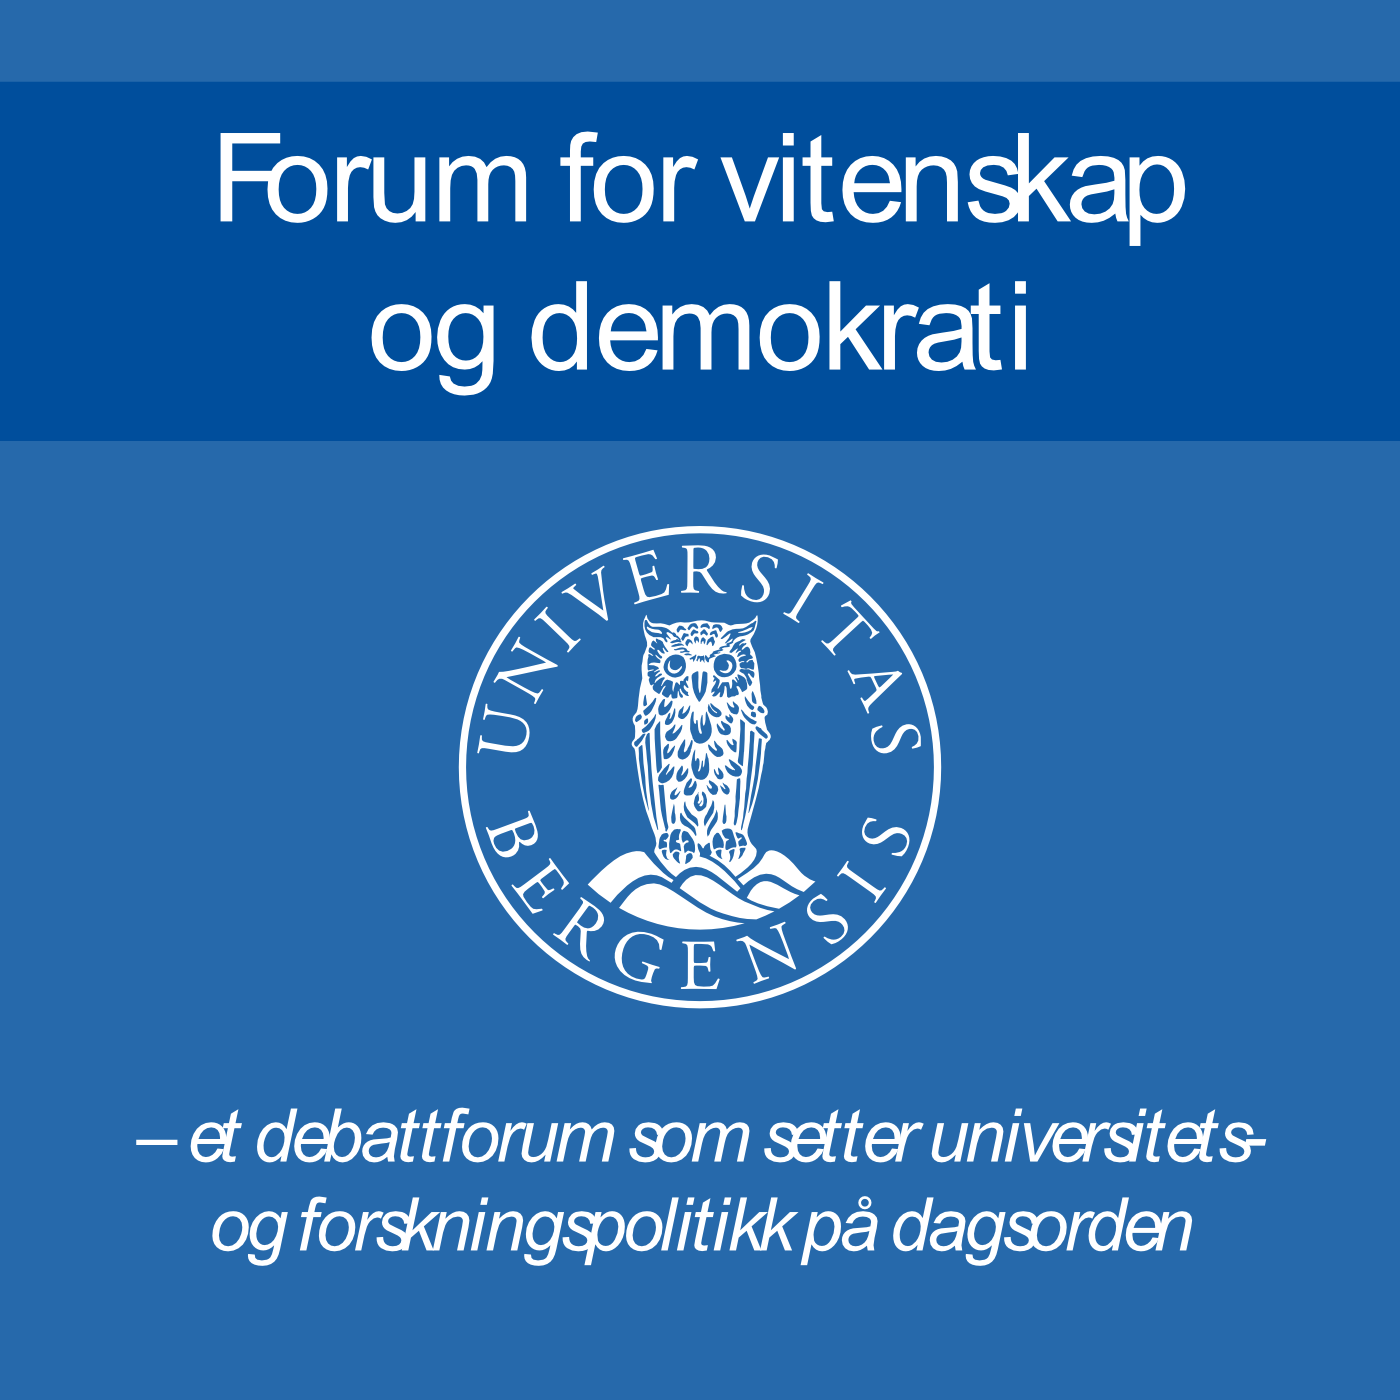 Forum for vitenskap og demokrati